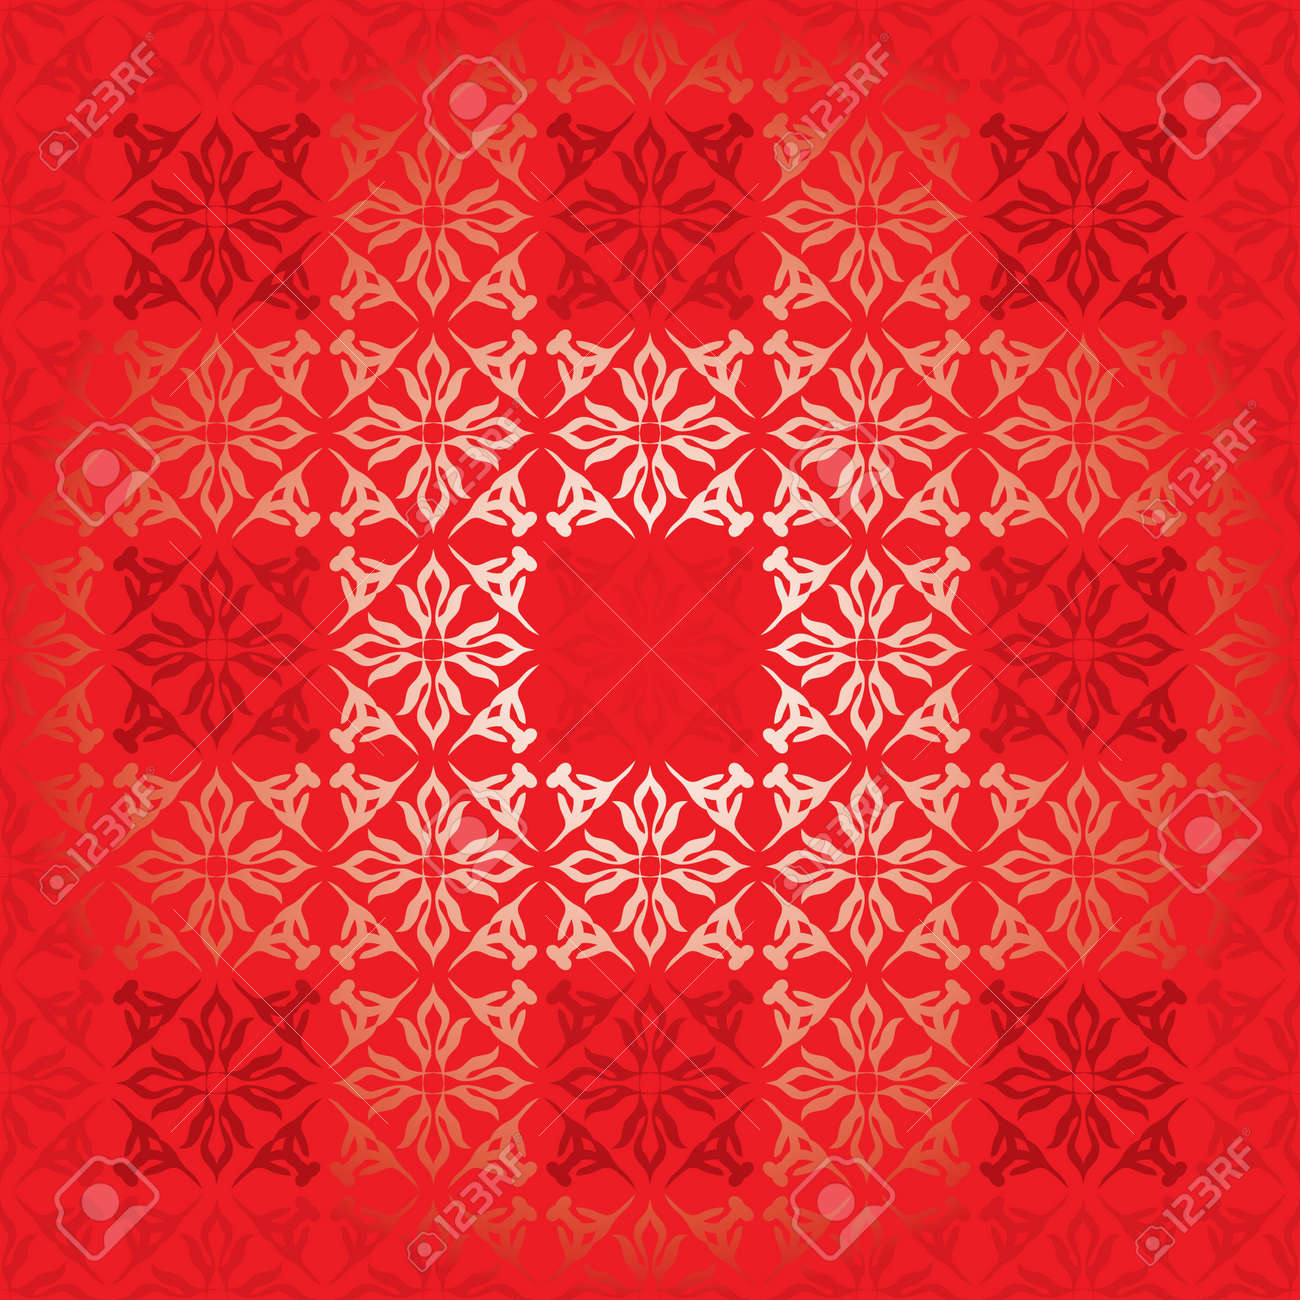 shades of red square background with floral elements royalty free